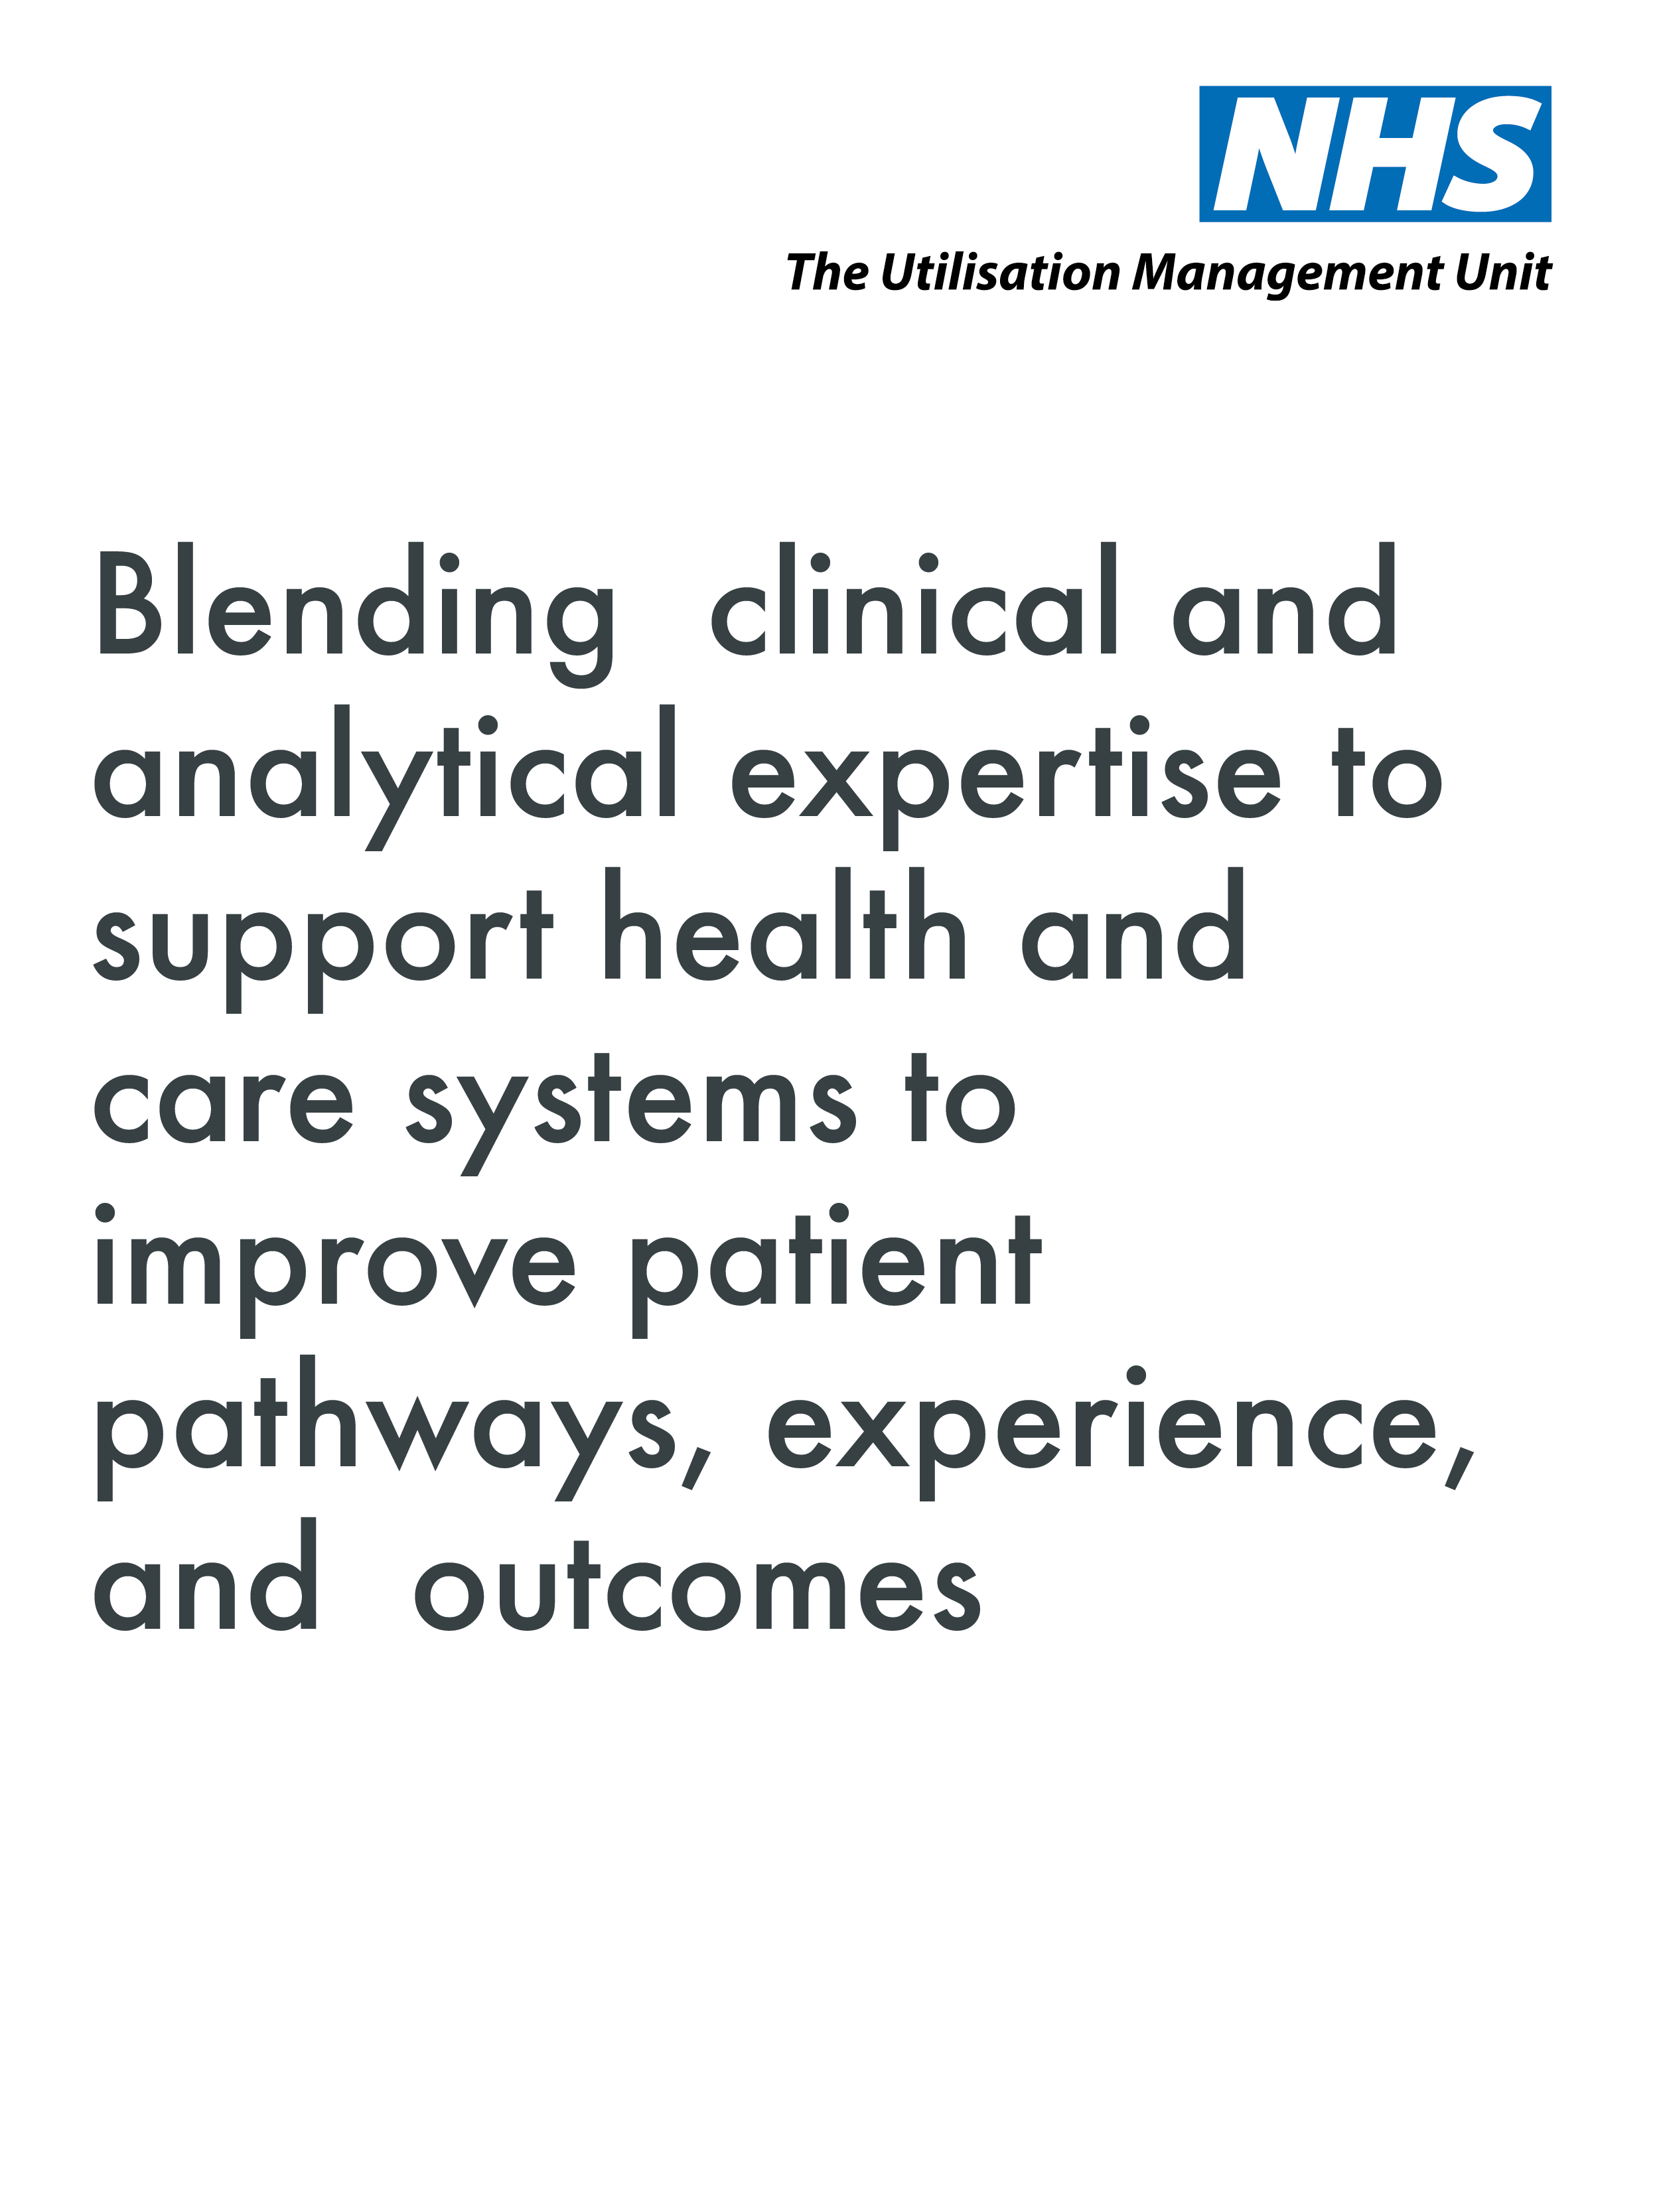 Blending clinical and analytical expertise to support health and care systems to improve patient pathways, experience, and outcomes